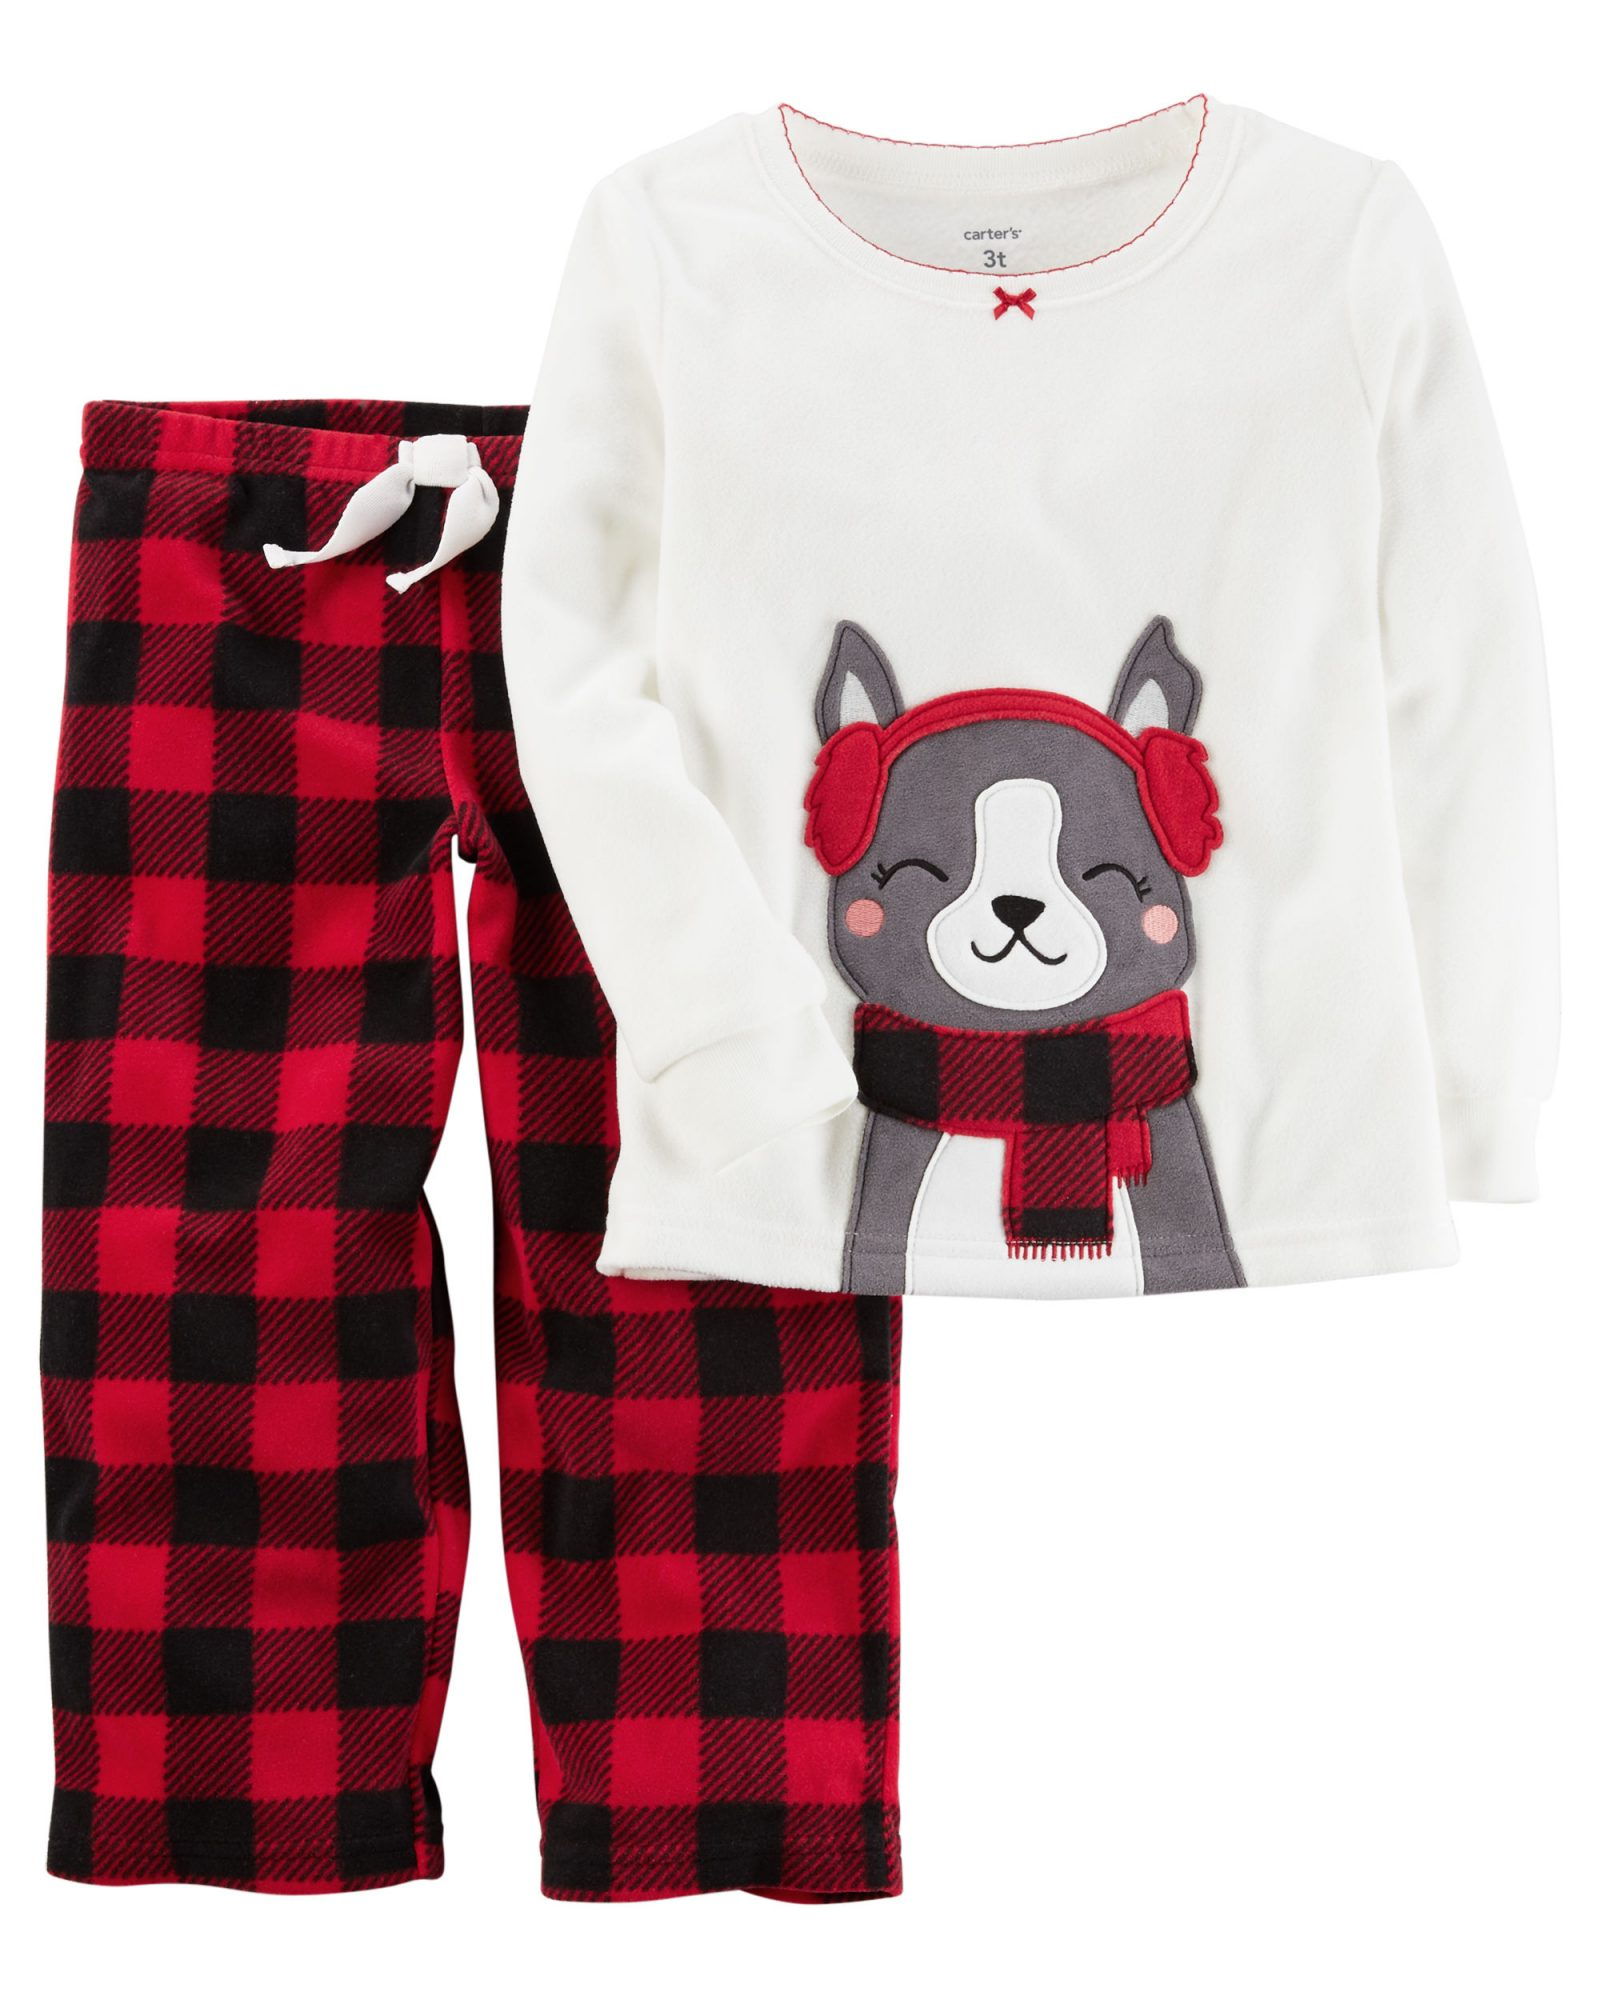 Cozy Fleece Girls' Christmas PJs